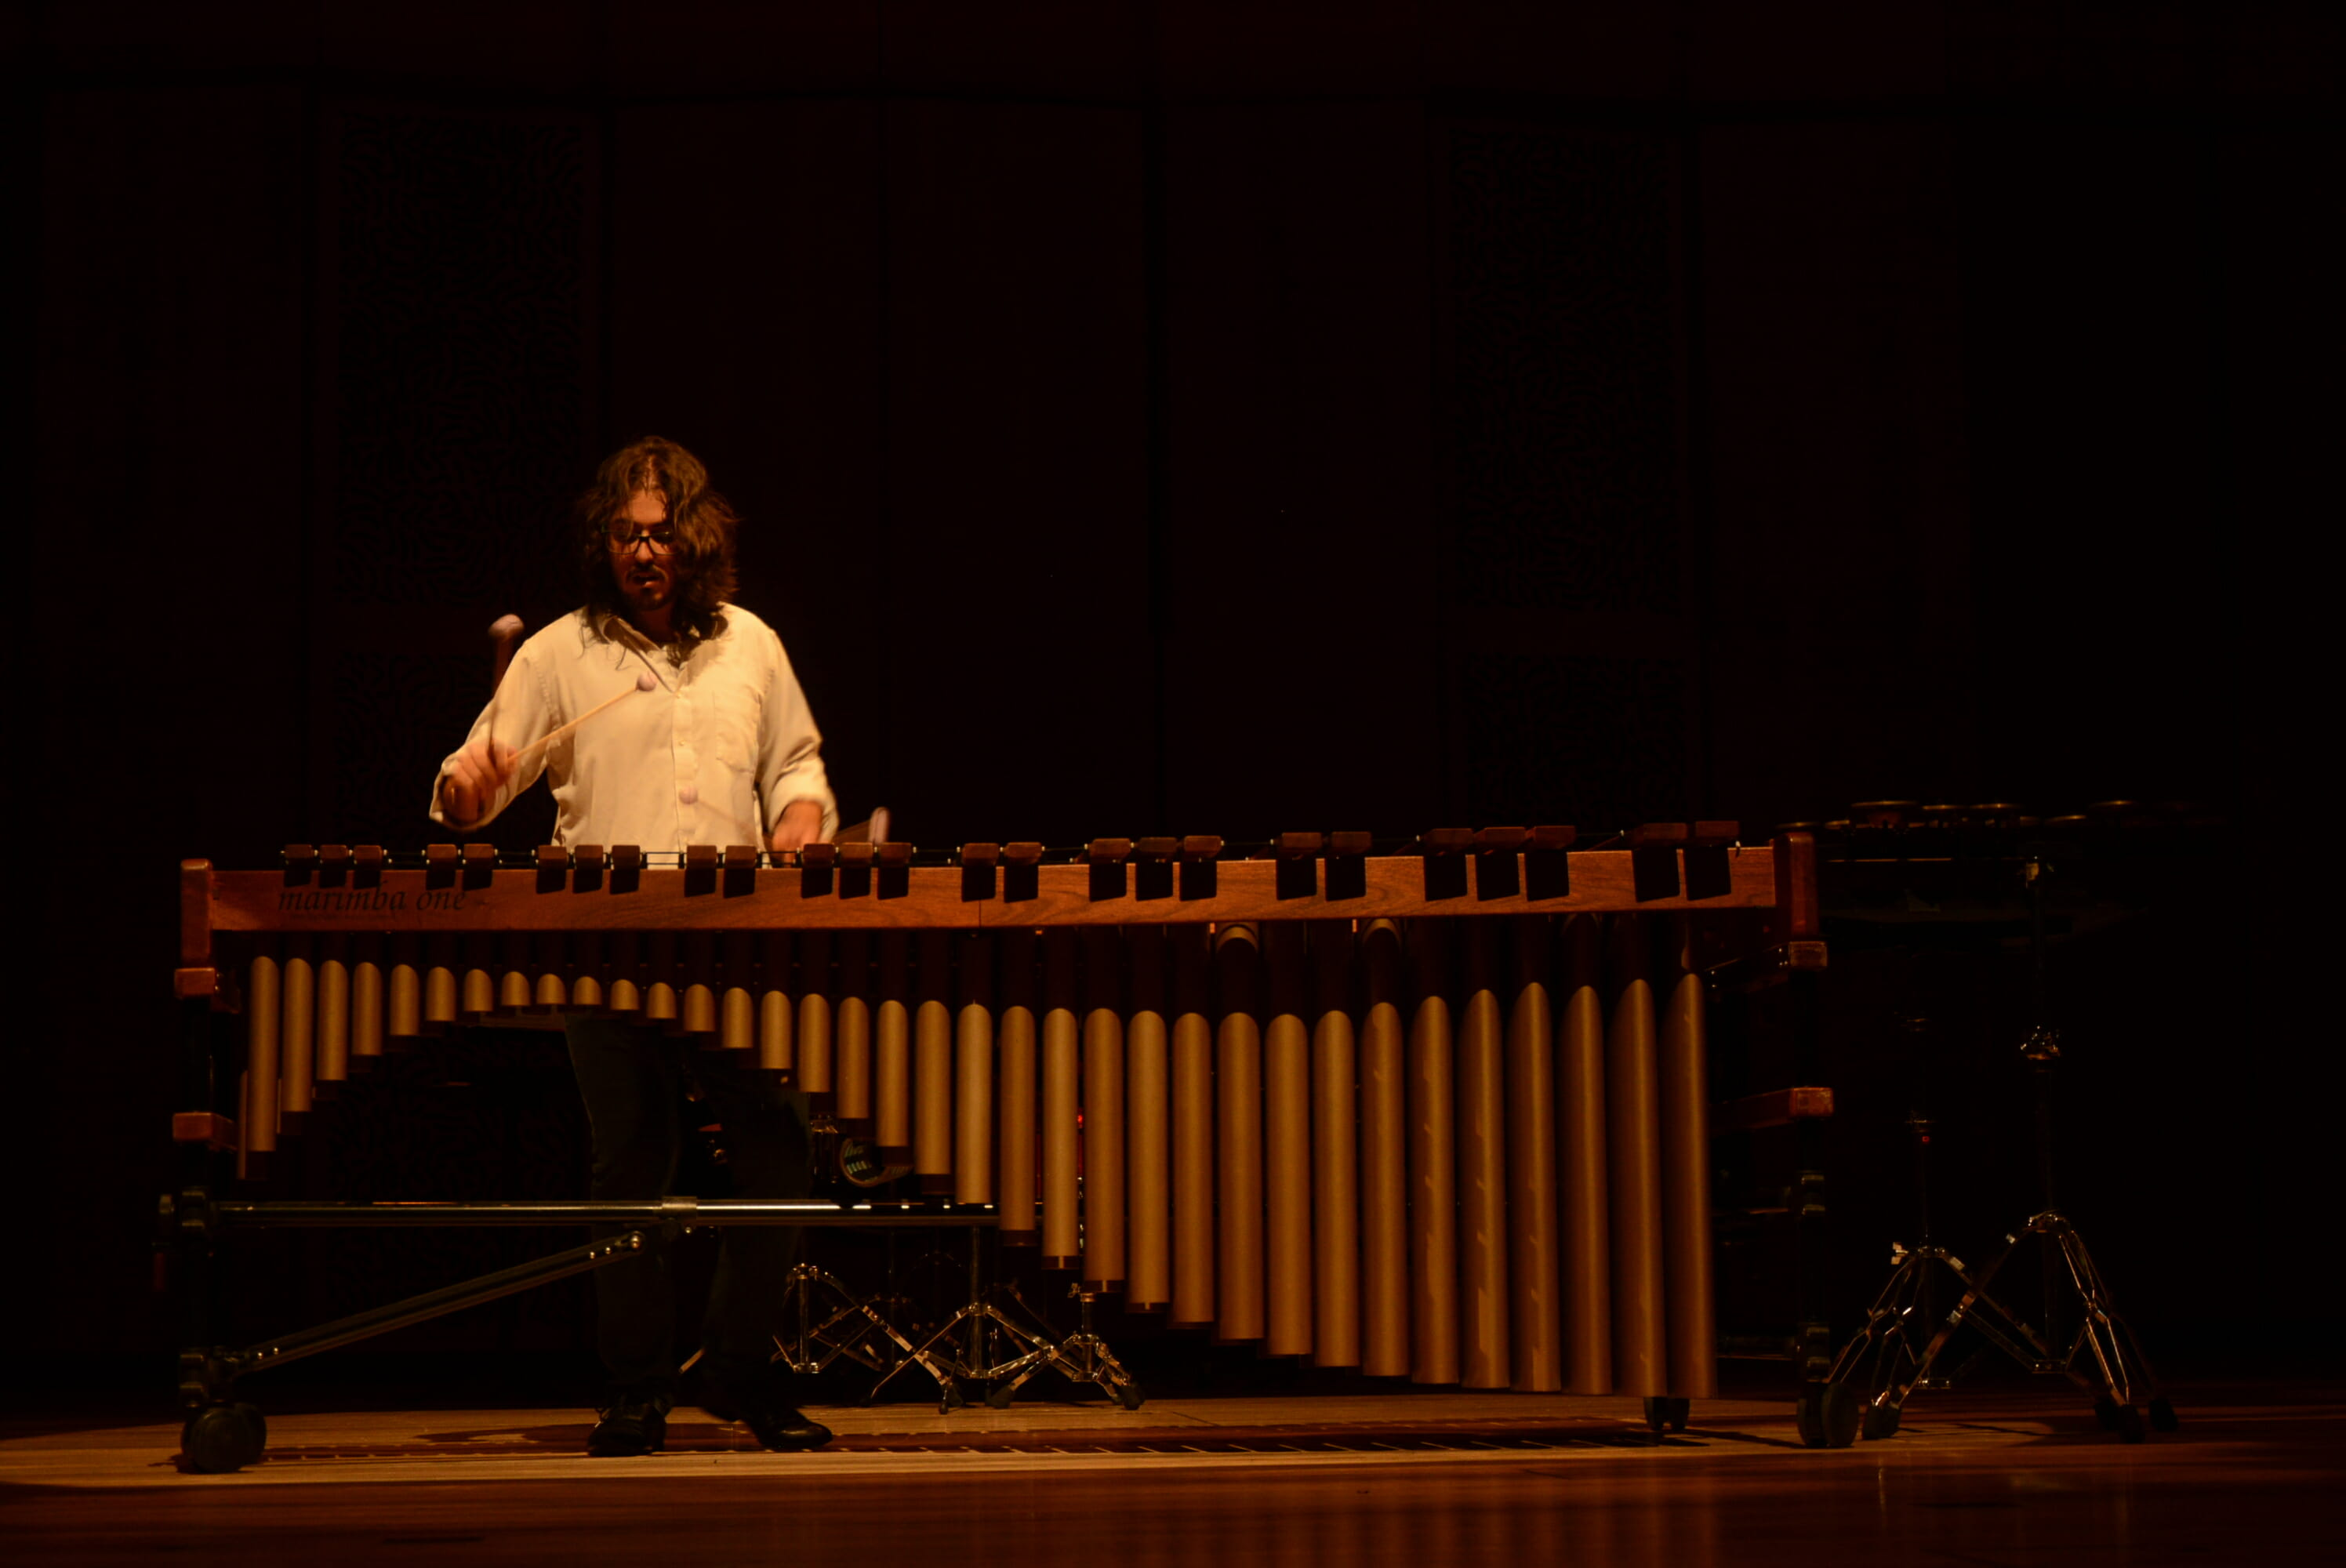 Tsoof playing marimba